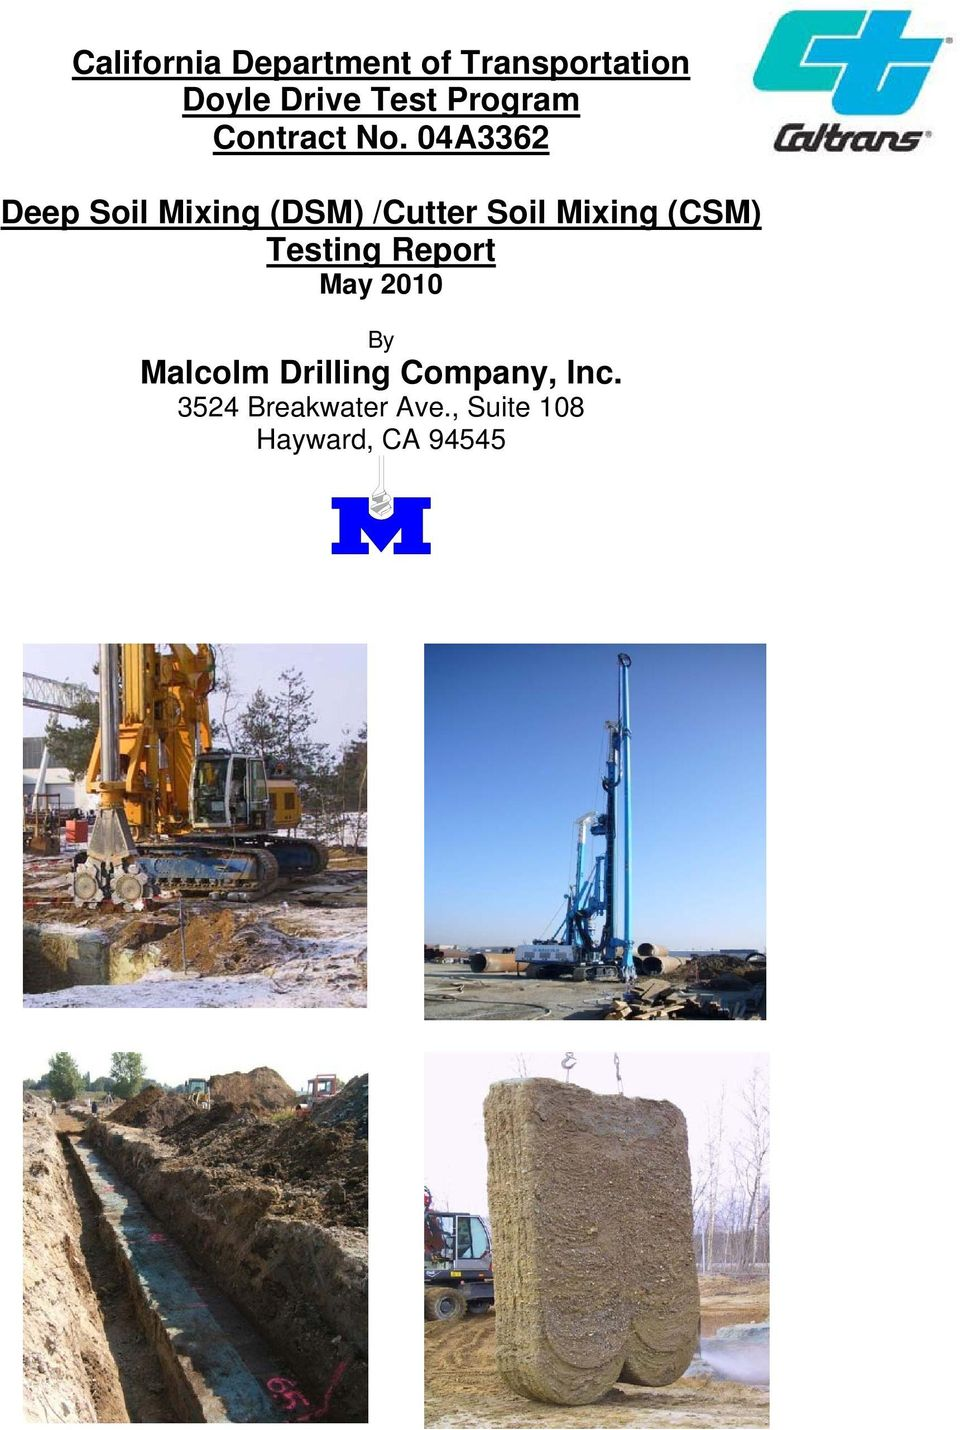 Mixing (CSM) Testing Report By Malcolm Drilling